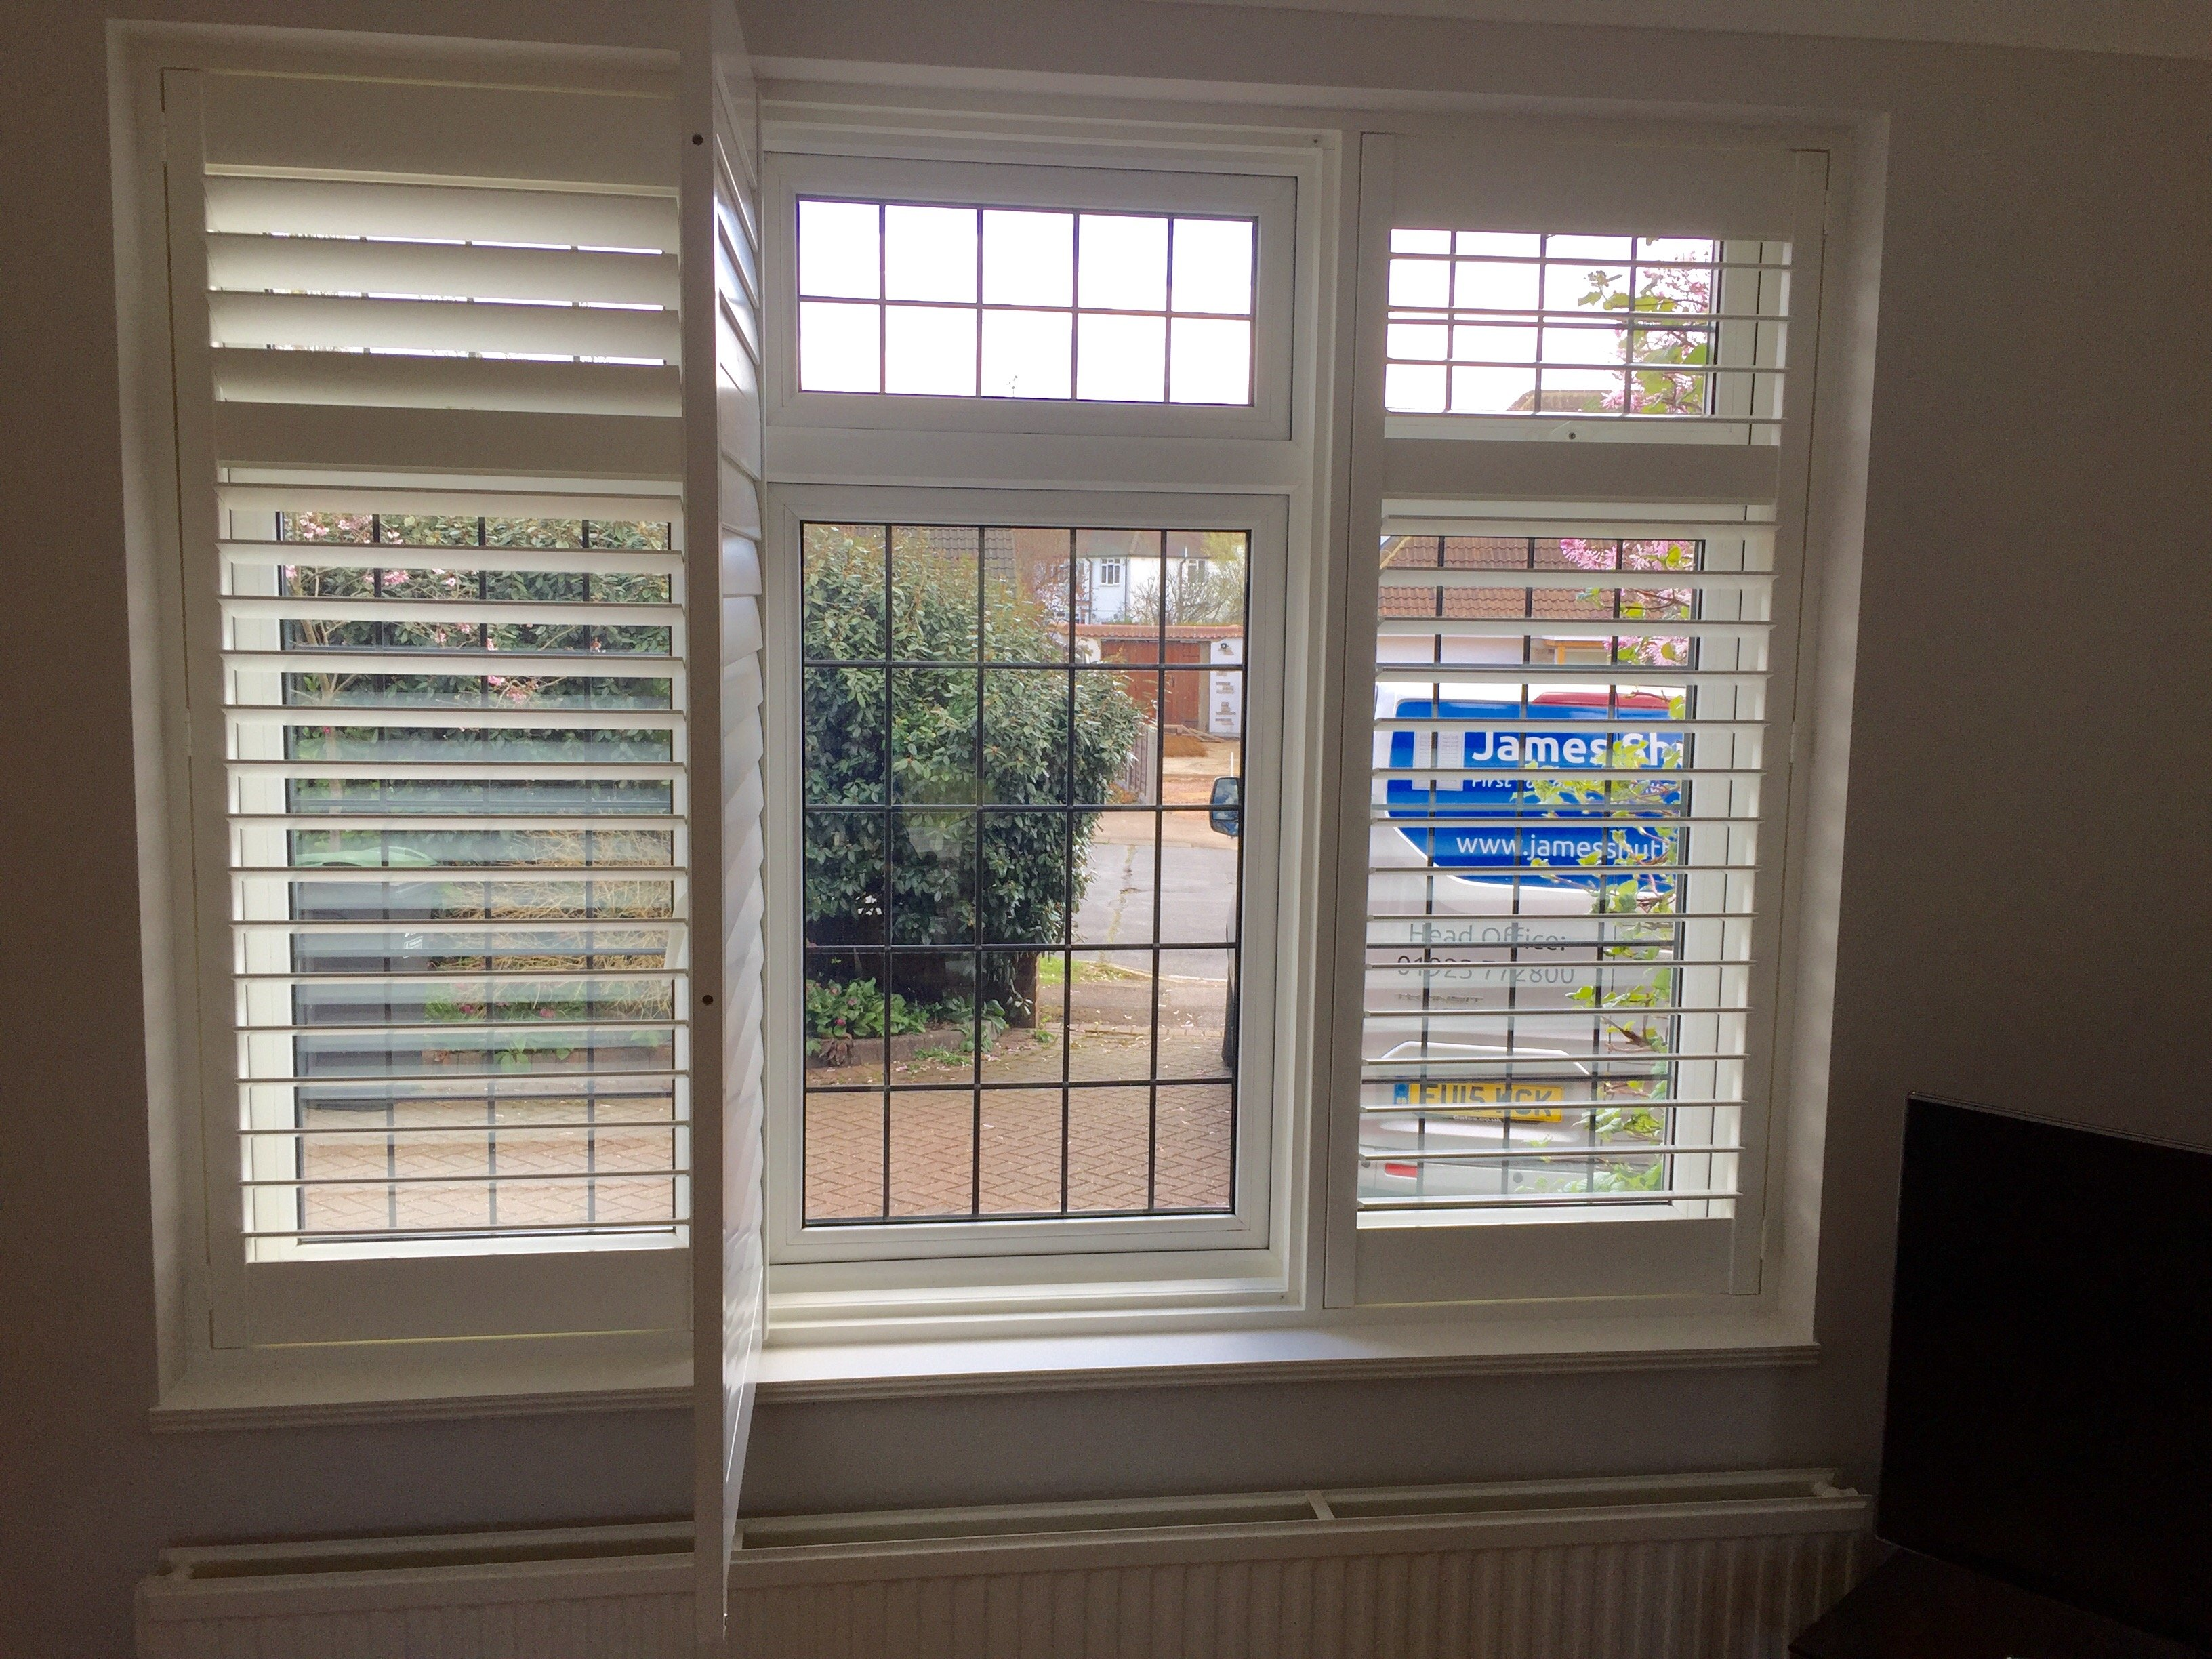 Full height Window Shutters on bedroom window with middle shutter drawn back to show windoe